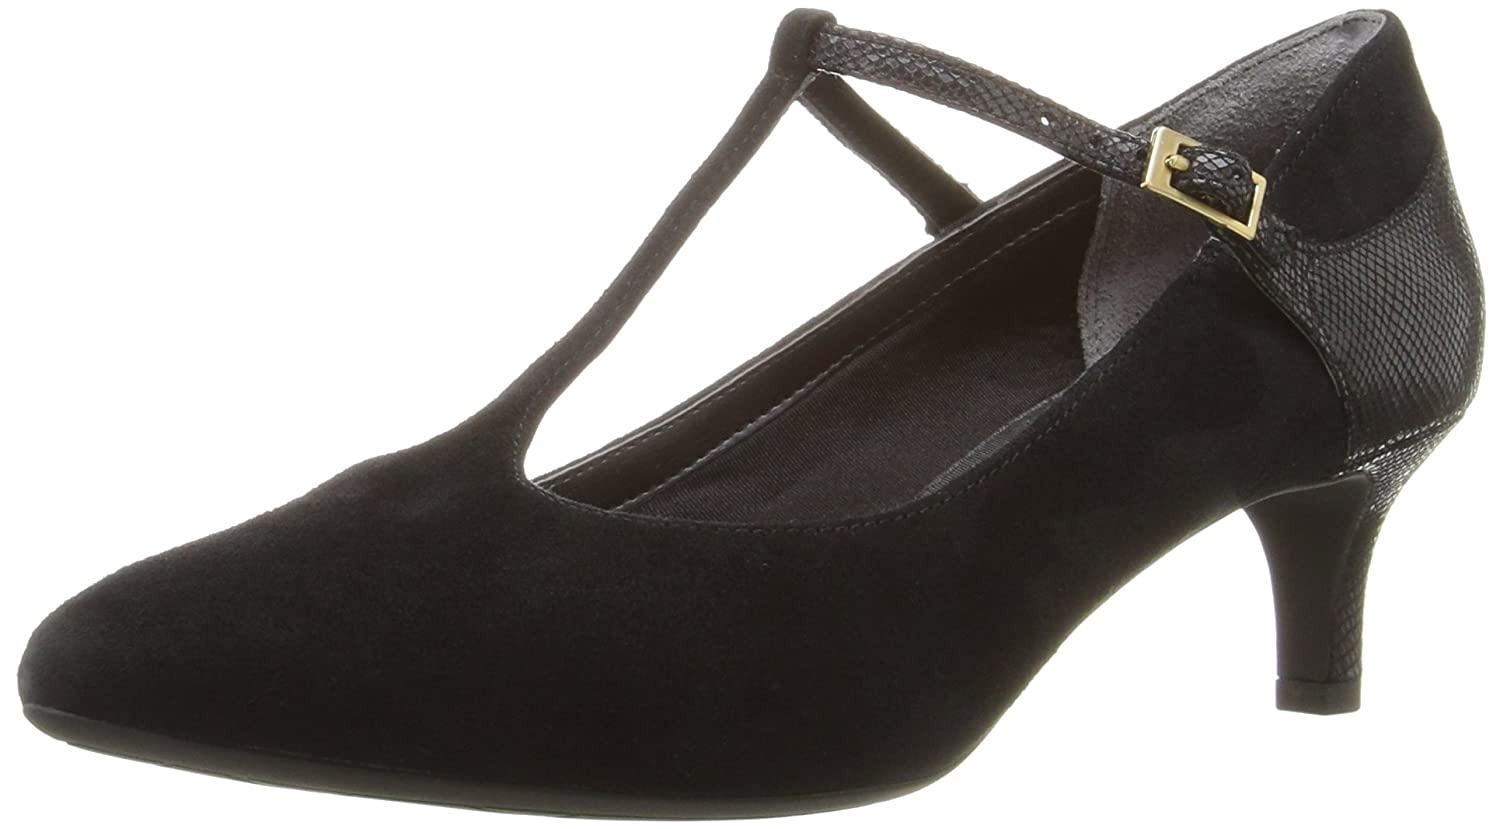 Rockport Women's Total Motion Kalila T-Strap Dress Pump B01ABS1KSG 10 W US|Black Kid Suede